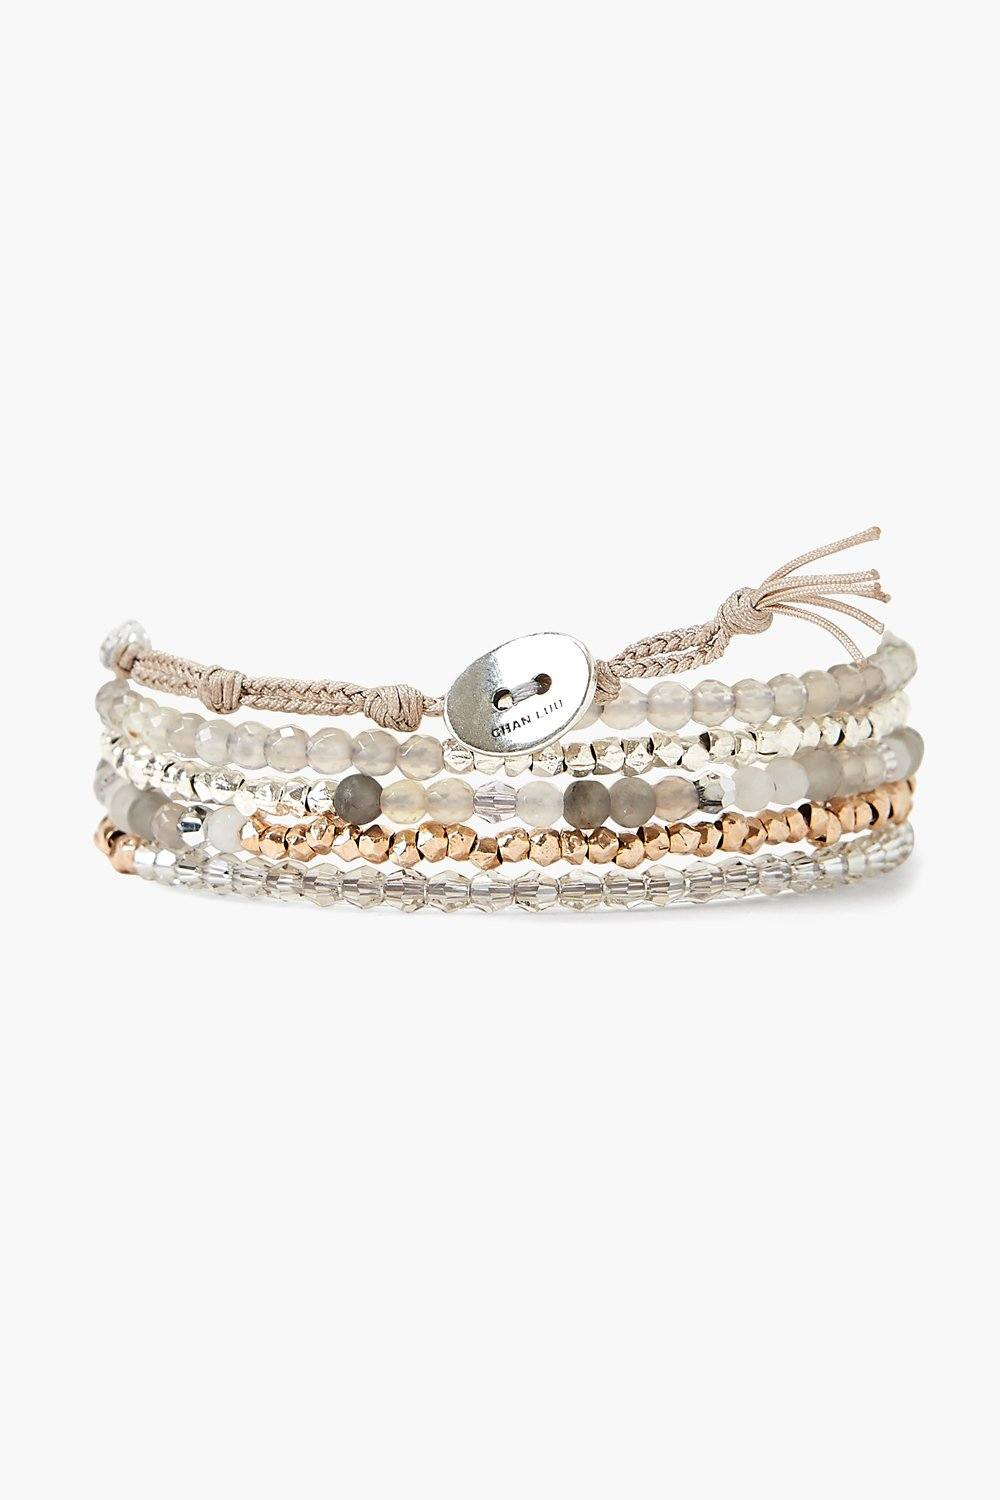 Chan Luu Grey Onyx Mix Naked Wrap Bracelet